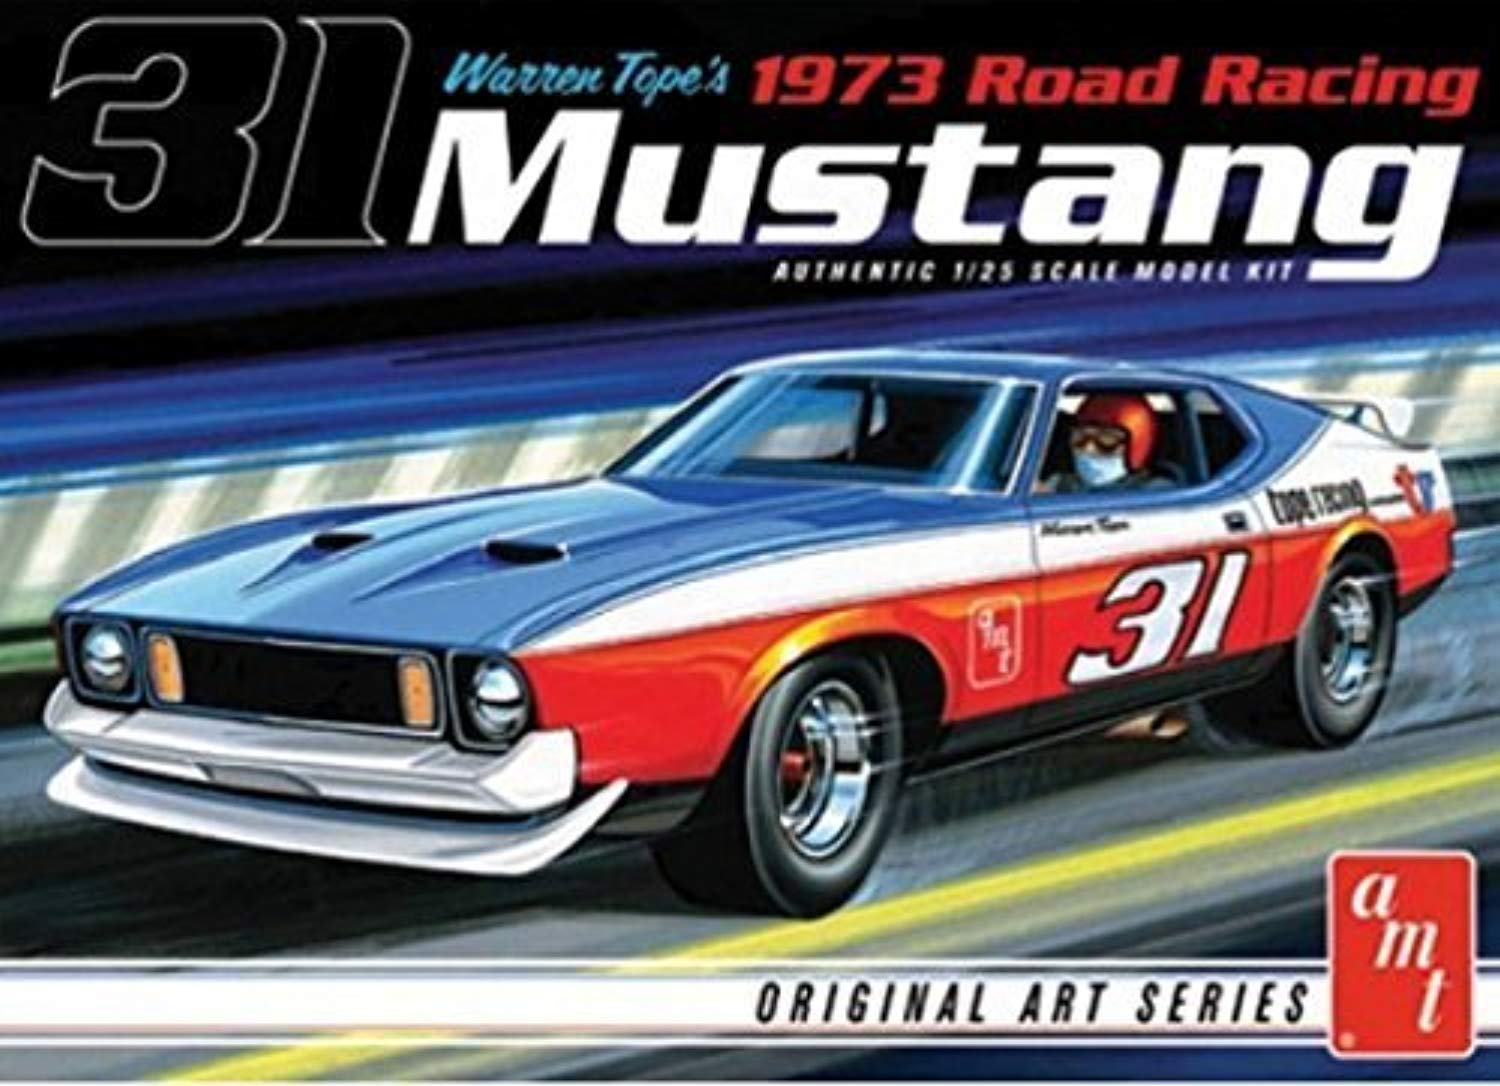 AMT 1 25 Scale 1973 Mustang Warren Tope modello auto by AMT